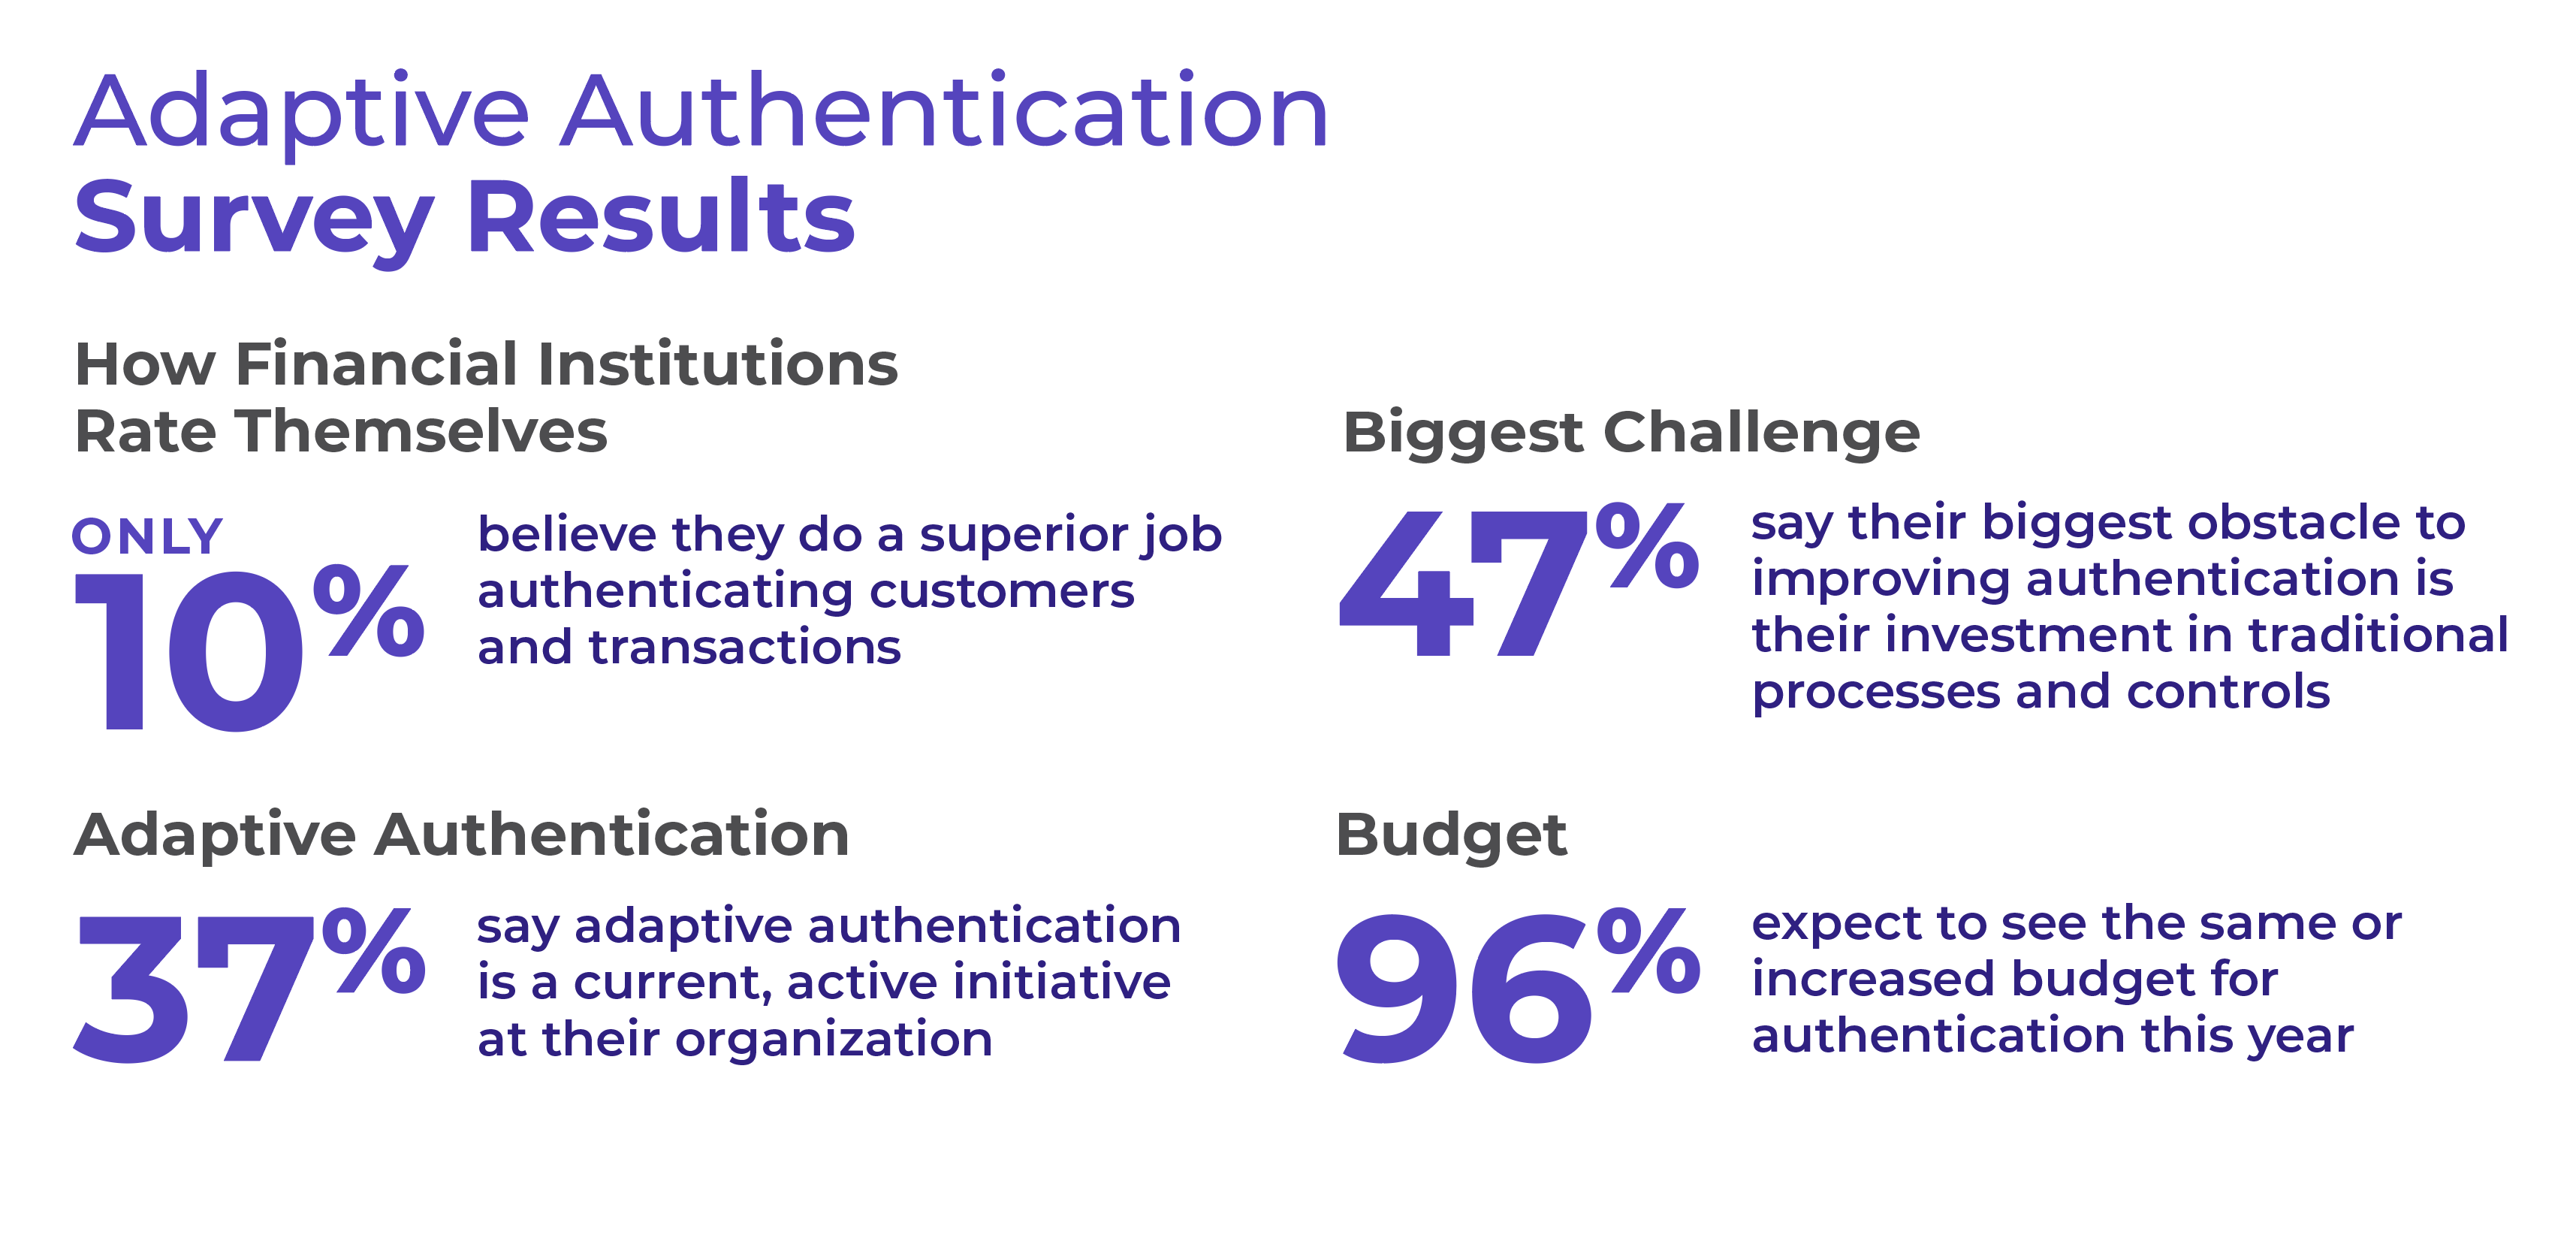 Adaptive Authentication Survey Results